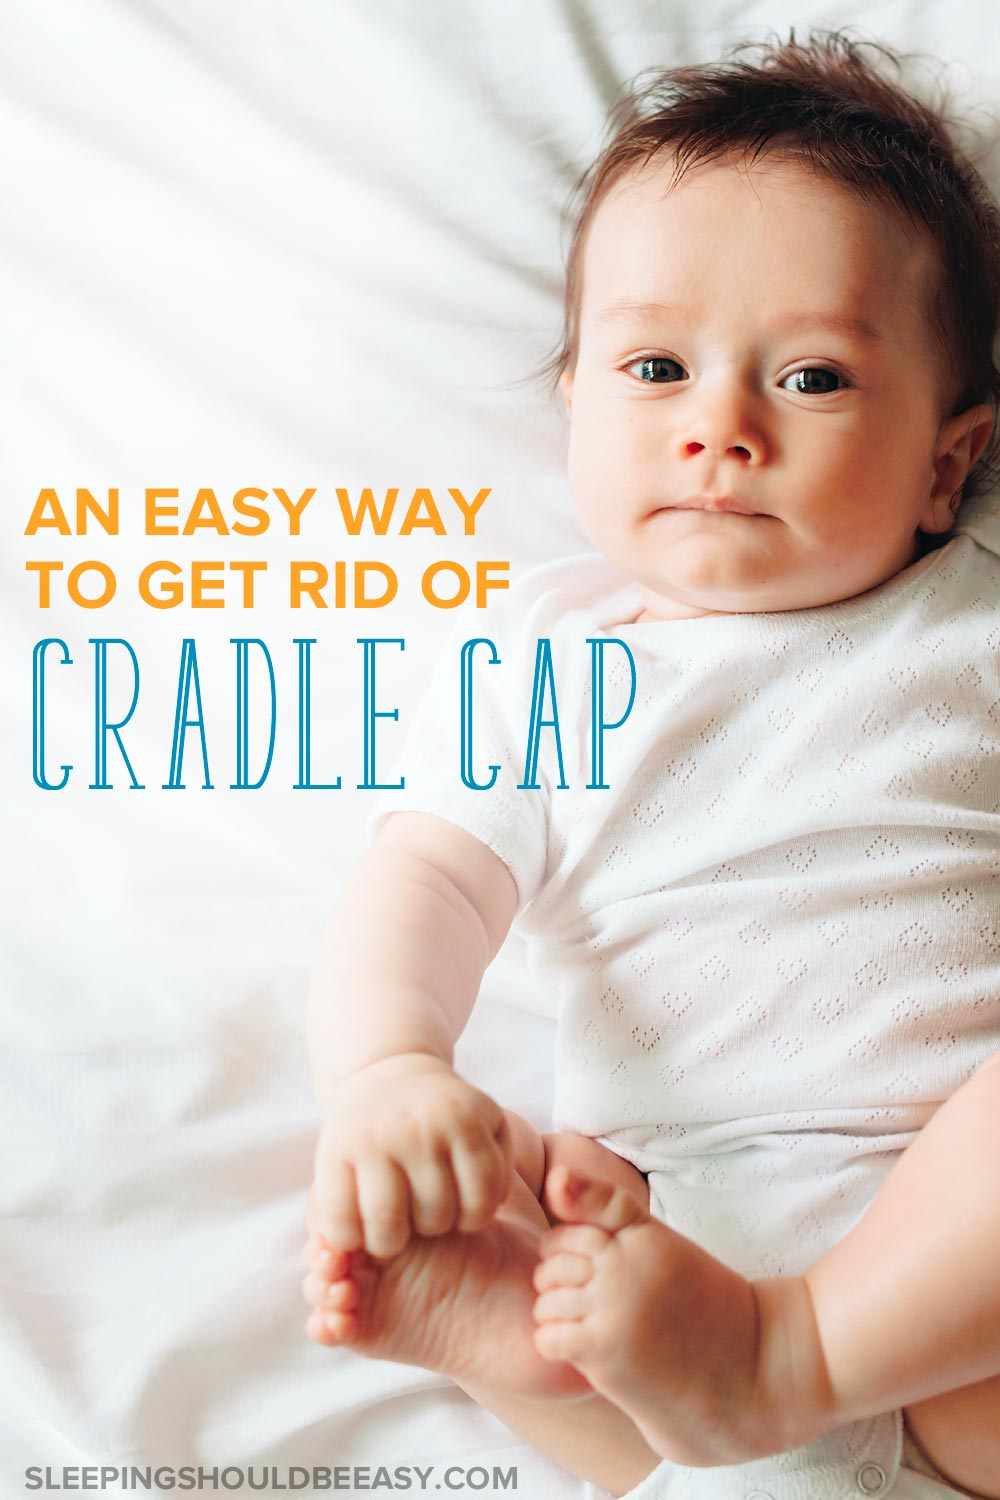 Does your baby have scaly, dried patches on the scalp? Learn how to get rid of cradle cap from his head using at-home, easy treatments in as little as days.